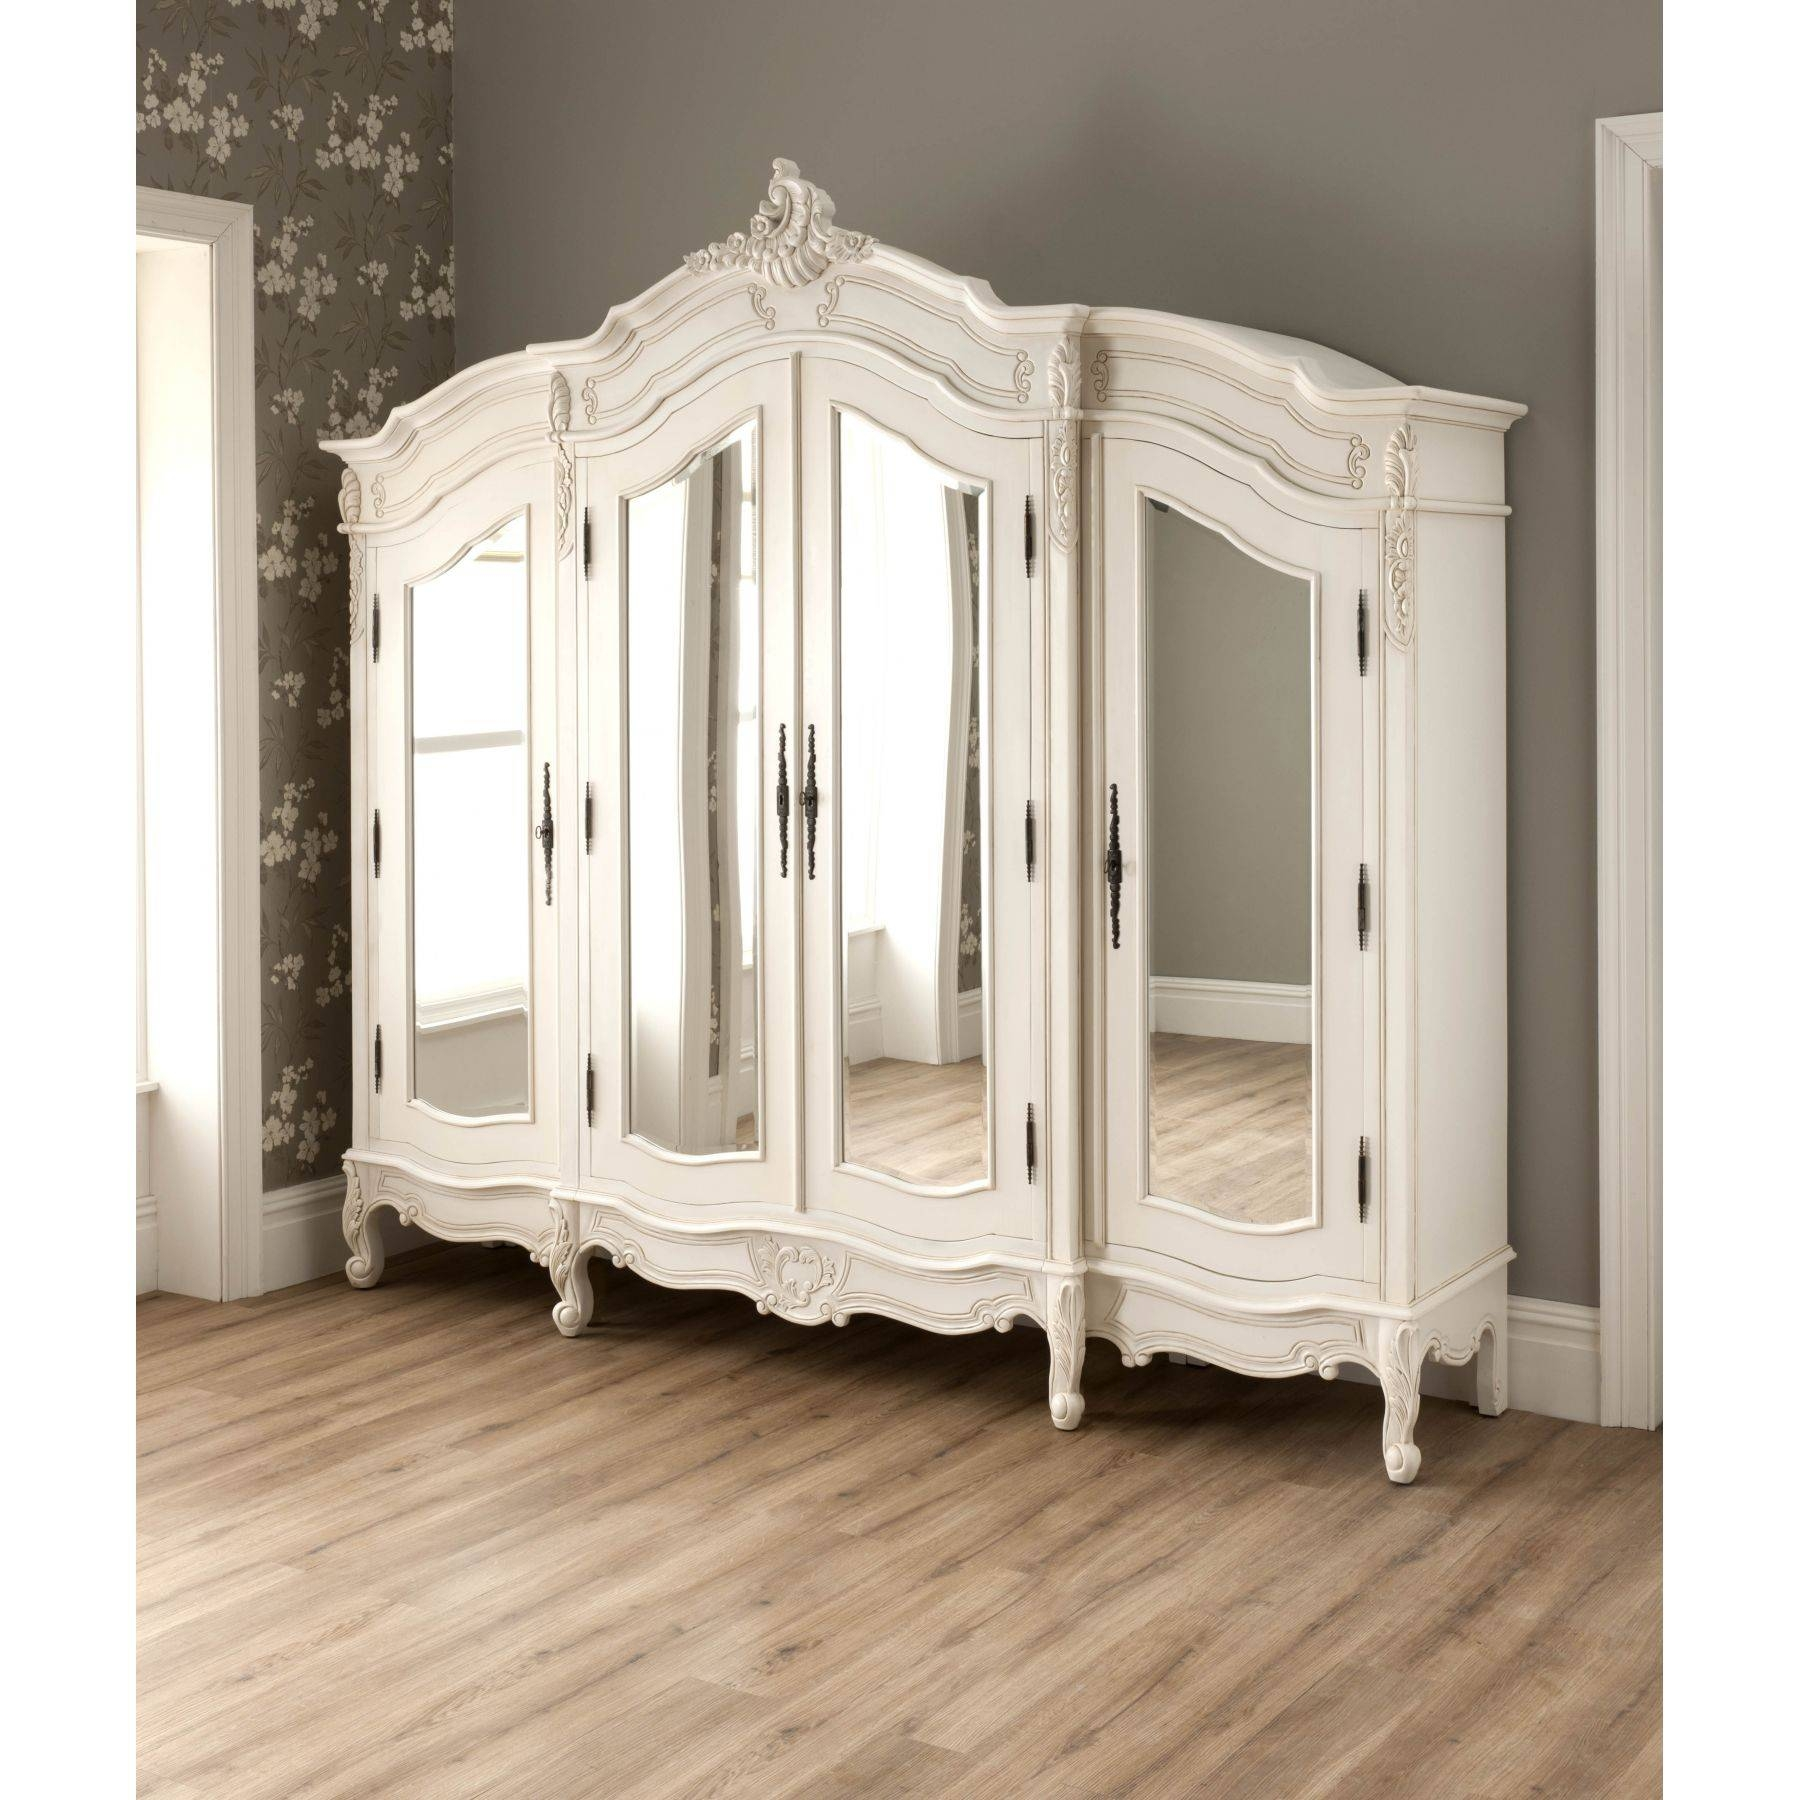 Shabby Chic Furniture Uk | French Furniture & Mirrored |Homesdirect365 within Cheap French Style Wardrobes (Image 14 of 15)